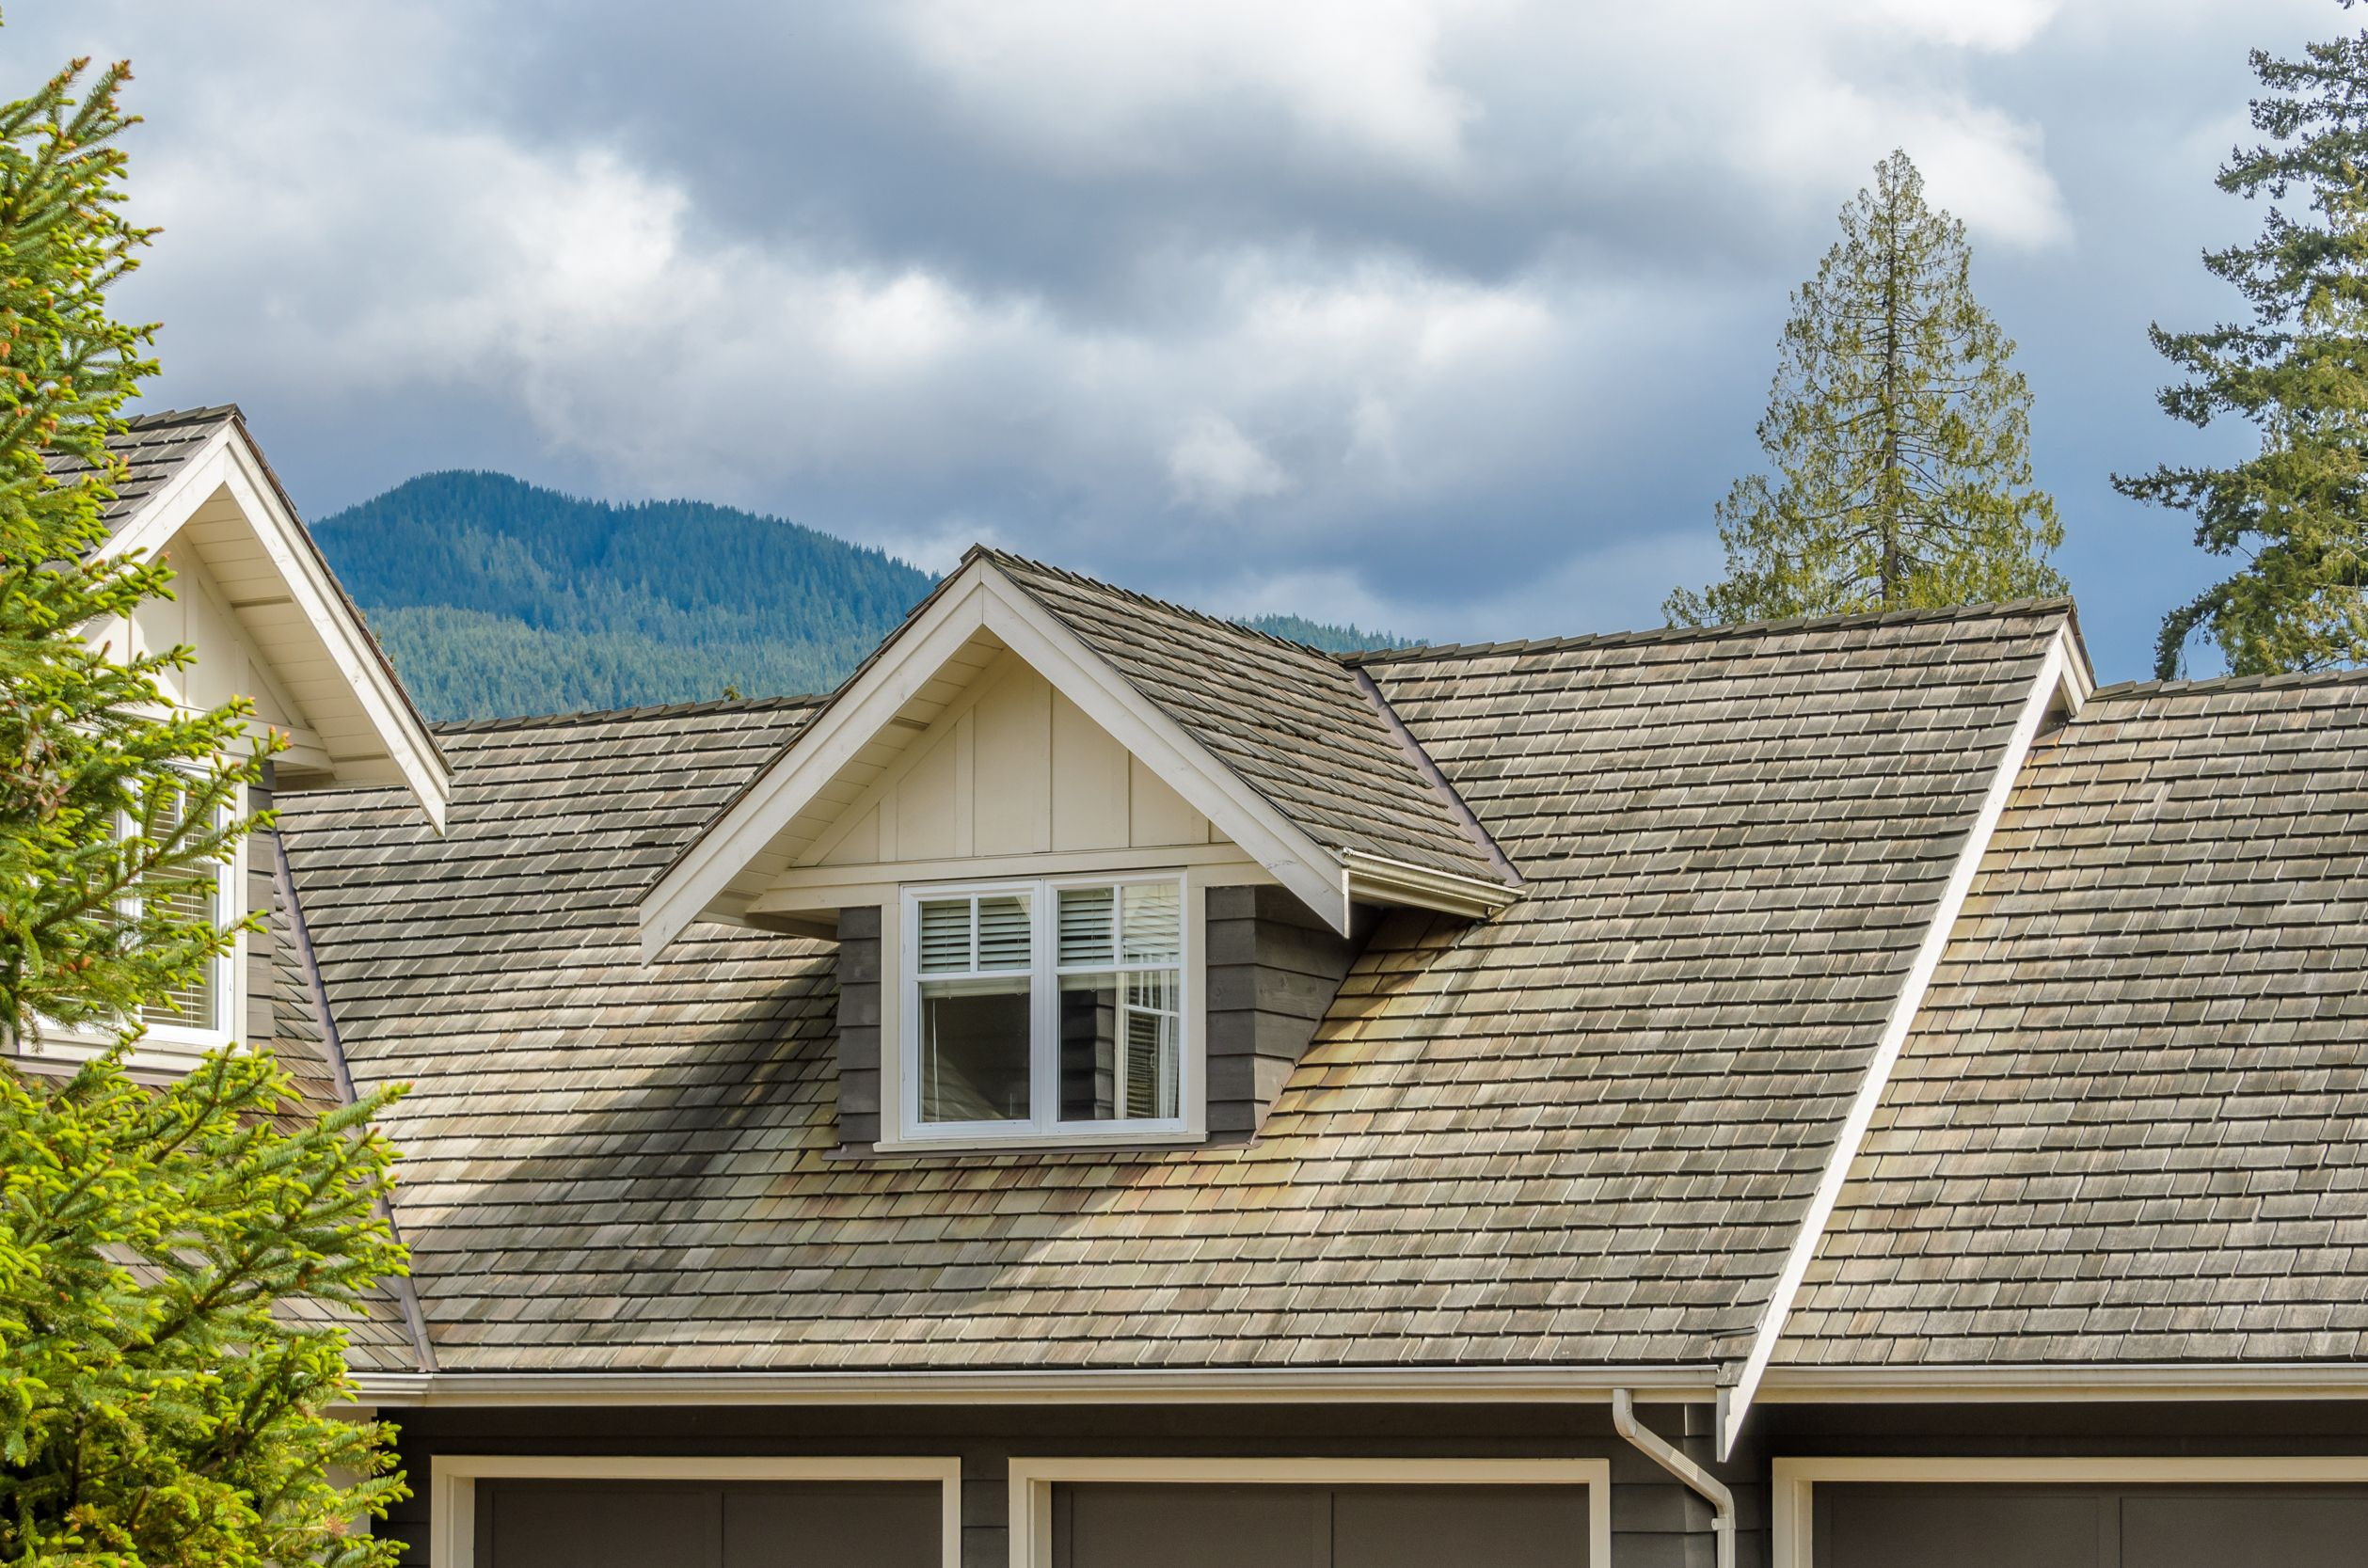 3 Questions To Ask Yourself Before Getting A New Roof The Roof Makes Up A Huge Portion Of Your House So This Or That Questions Roof Damage Roofing